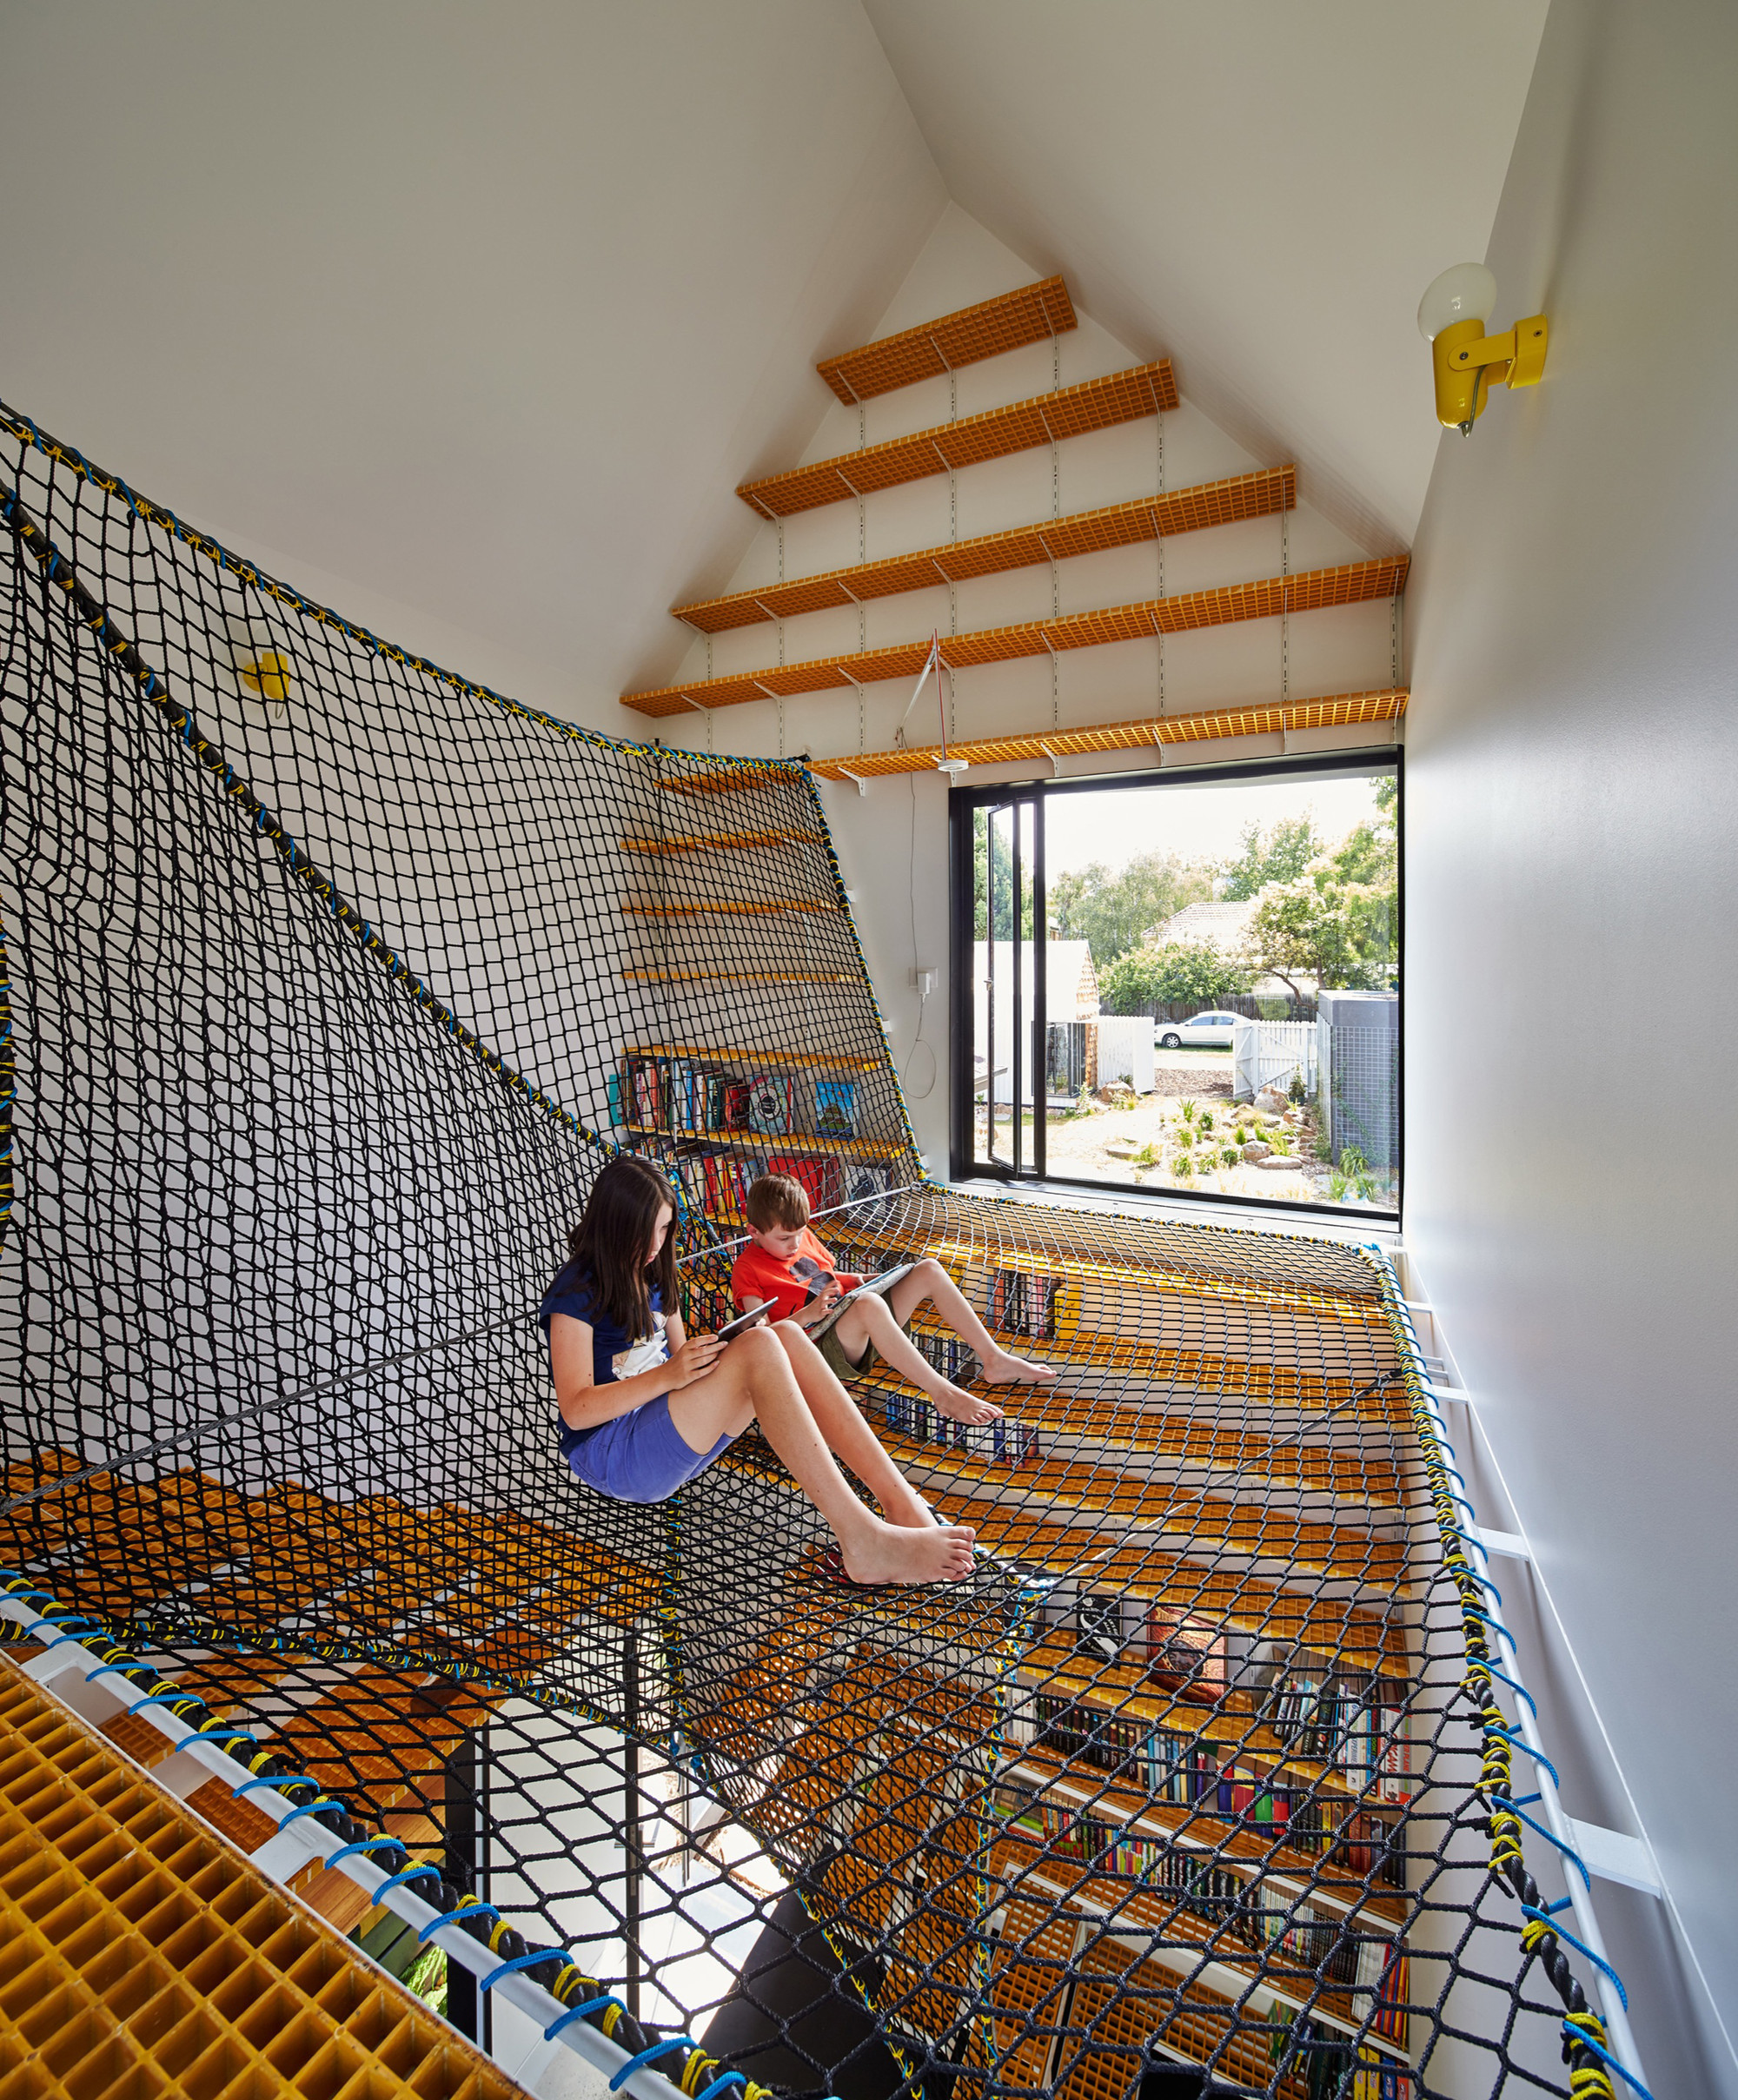 Pin By Interior Designer In A Box On Kids Teenager: Gallery Of Tower House / Austin Maynard Architects